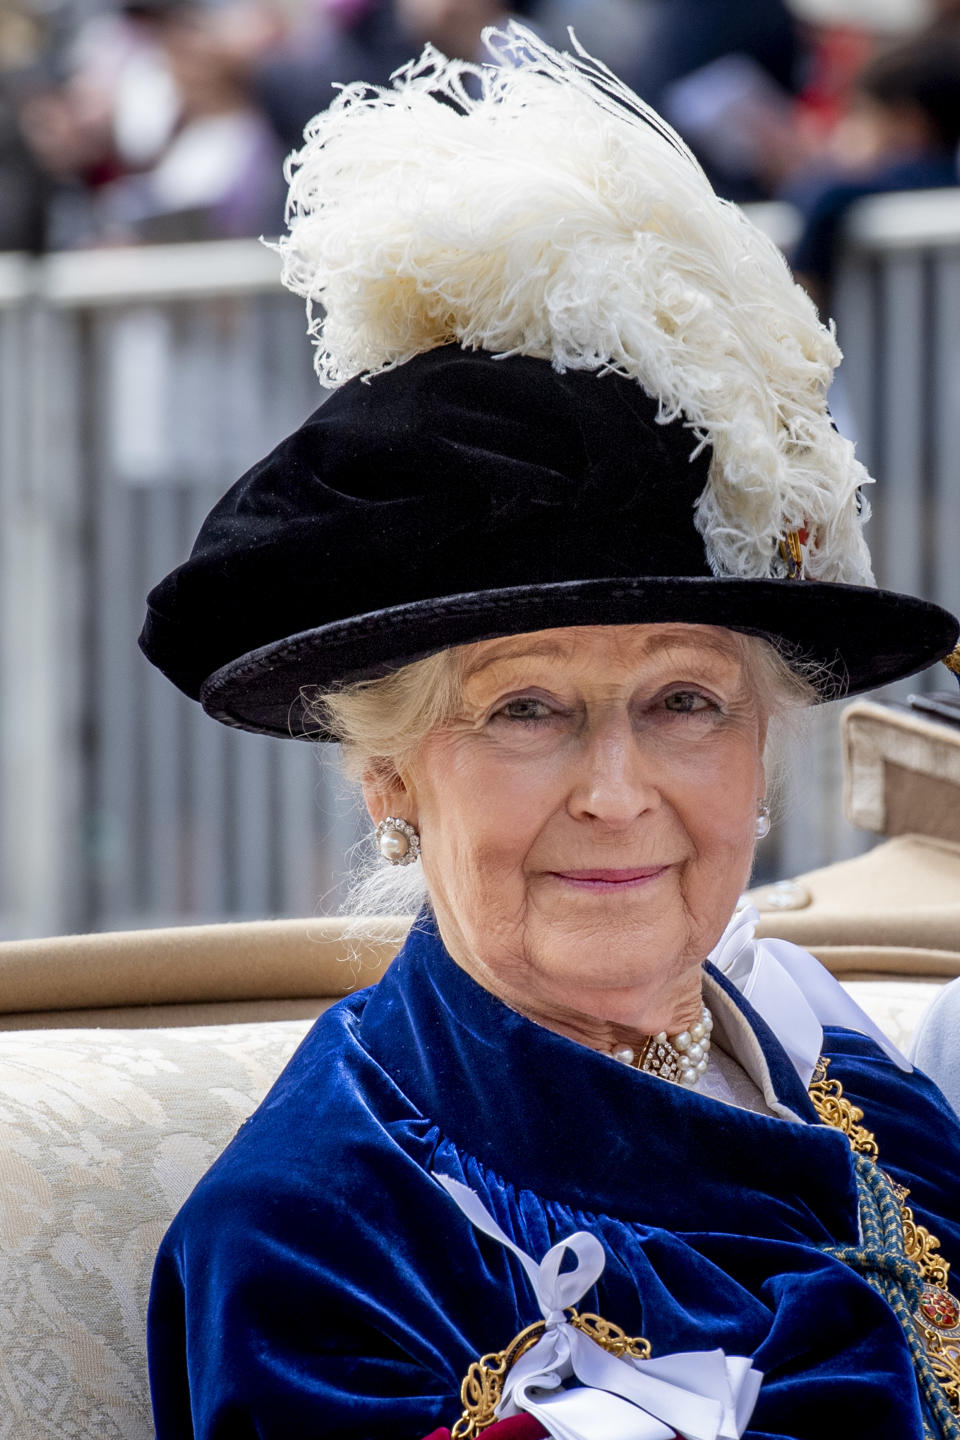 WINDSOR, ENGLAND - JUNE 17: Princess Alexandra of the United Kingdom at St George's Chapel on June 17, 2019 in Windsor, England. (Photo by Patrick van Katwijk/Getty Images)